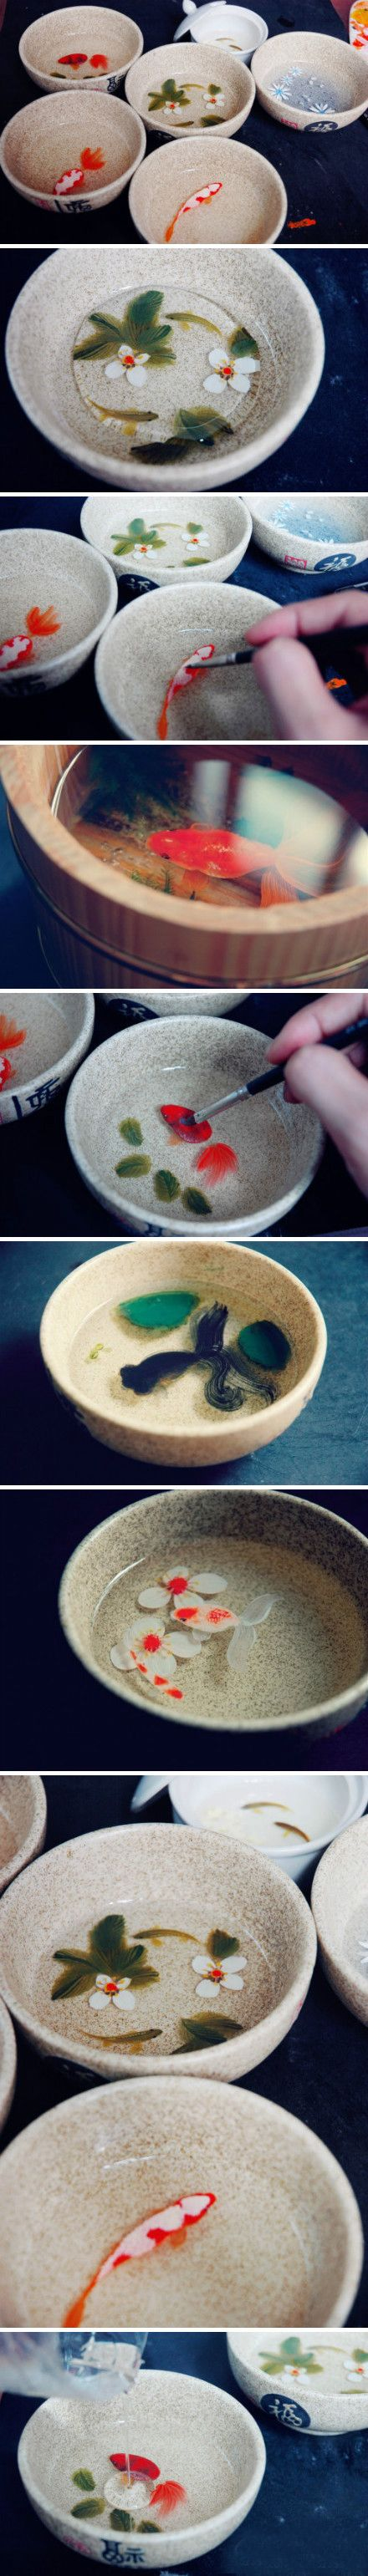 Multi-layered paintings in mugs/bowls for a 3D effect with koi fish and flowers <3